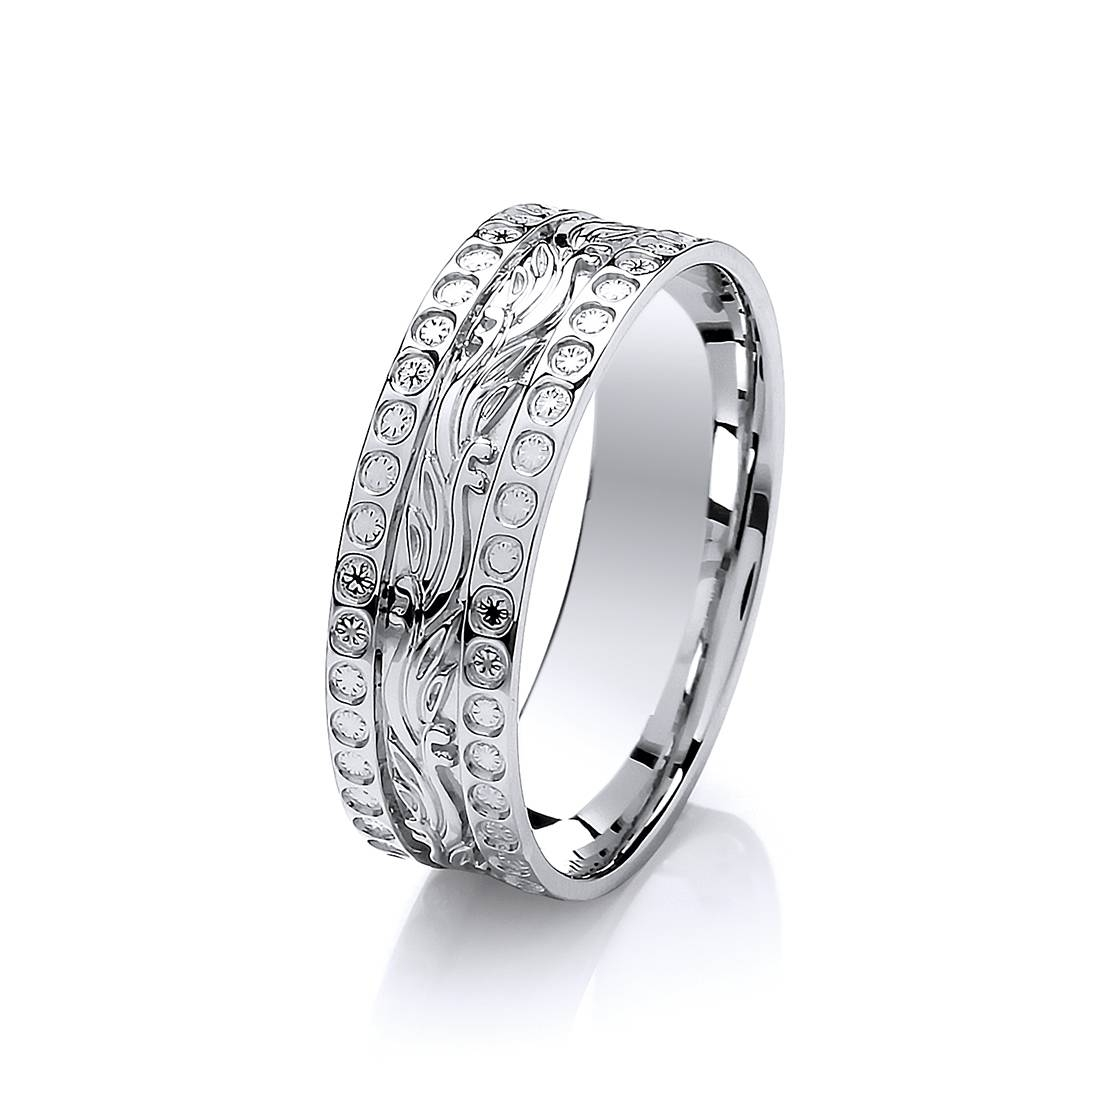 6Mm 9Ct White Gold Diamond Cut Effect Patterned Wedding Ring Within White Gold Diamond Cut Wedding Rings (Gallery 2 of 15)